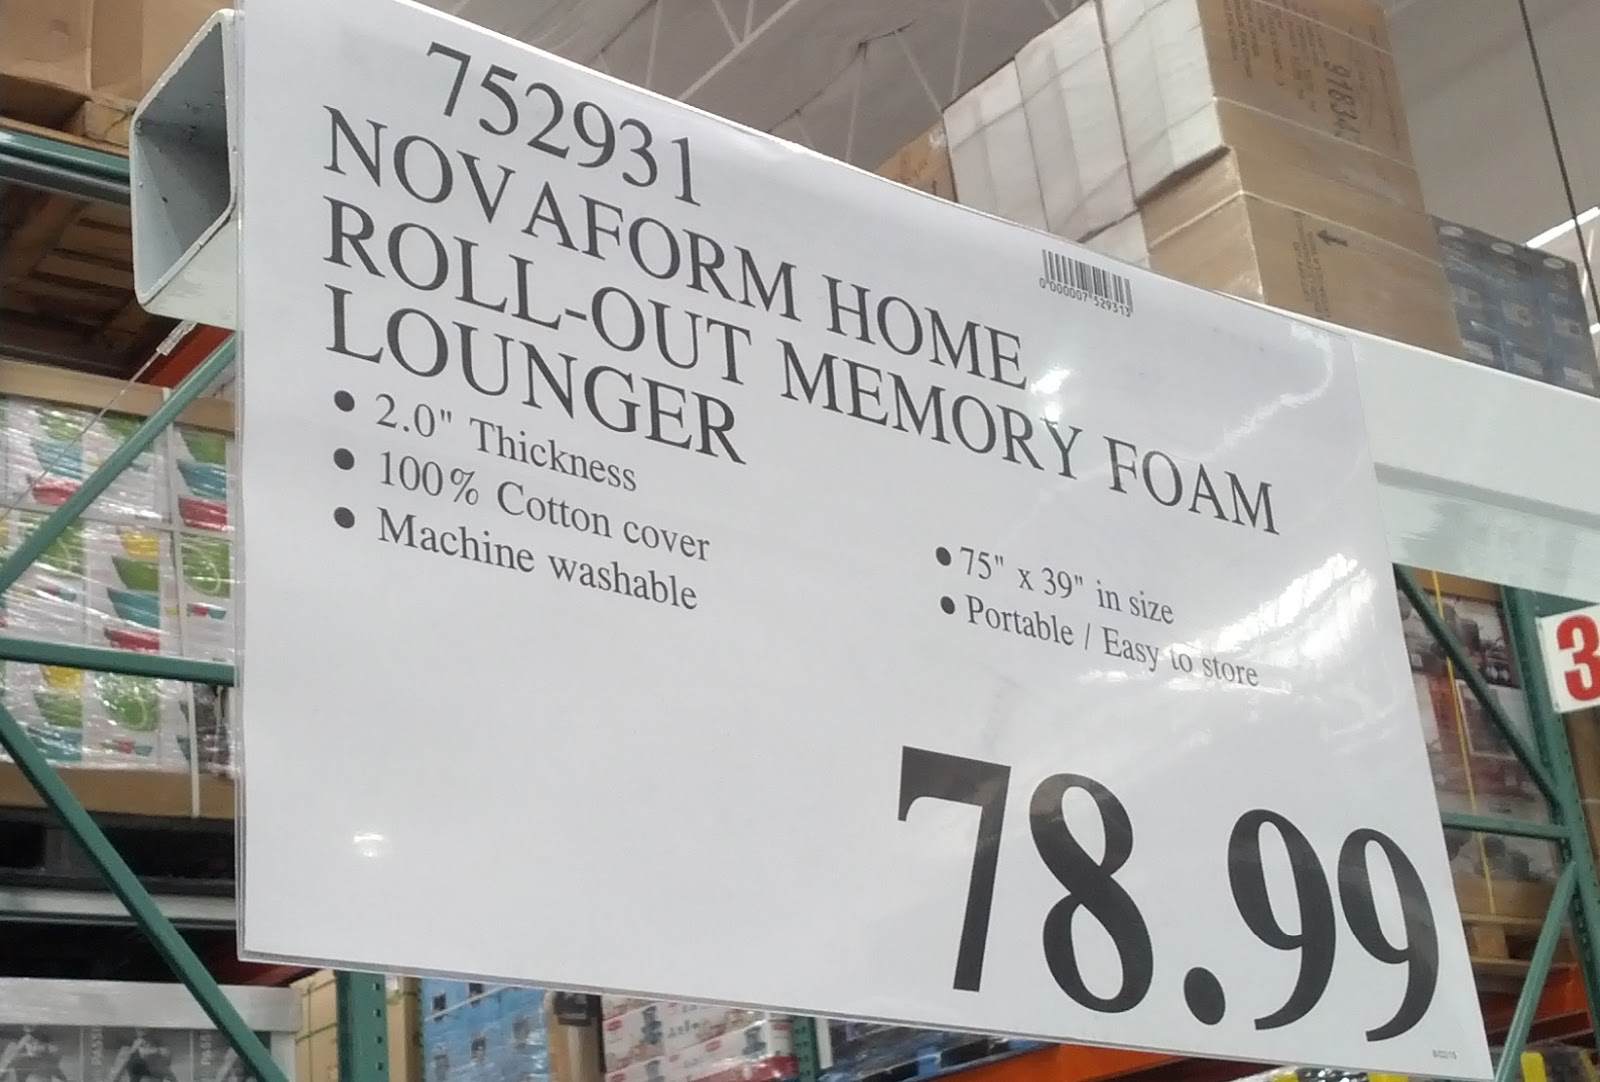 Novaform Home Roll Out Memory Foam Lounger Costco Weekender